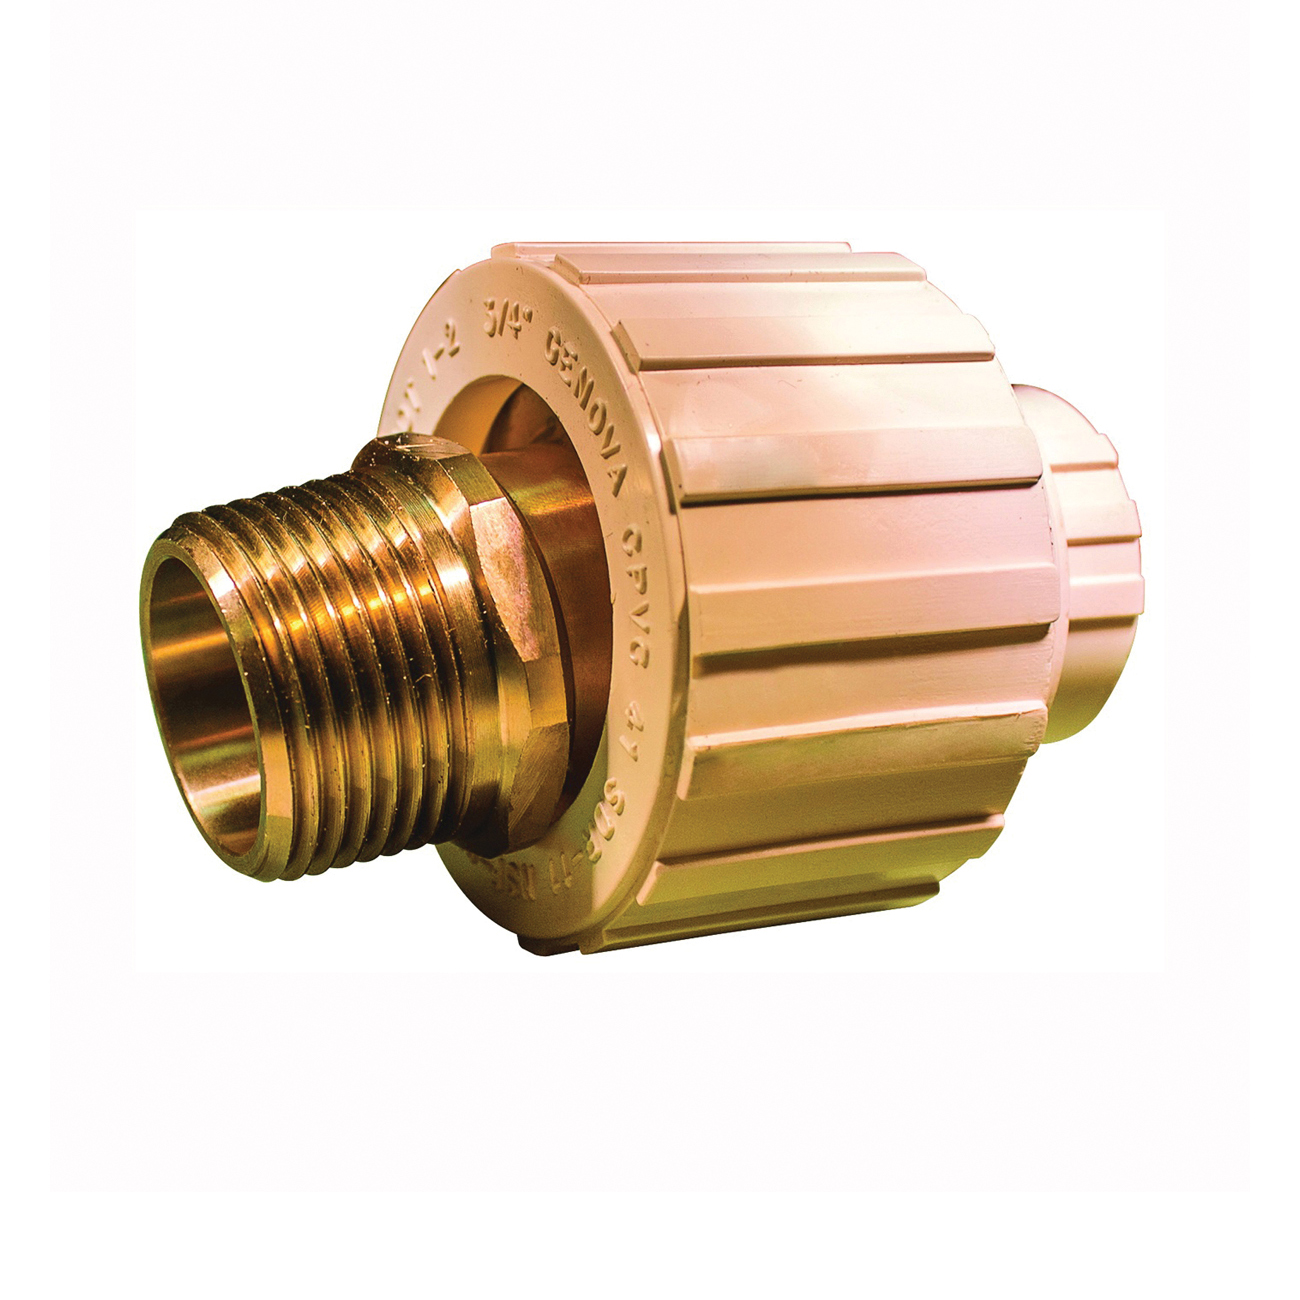 Picture of GENOVA 500 Series 53050Z Transition Union, 3/4 in, Slip Joint x MIP, 100 psi Pressure